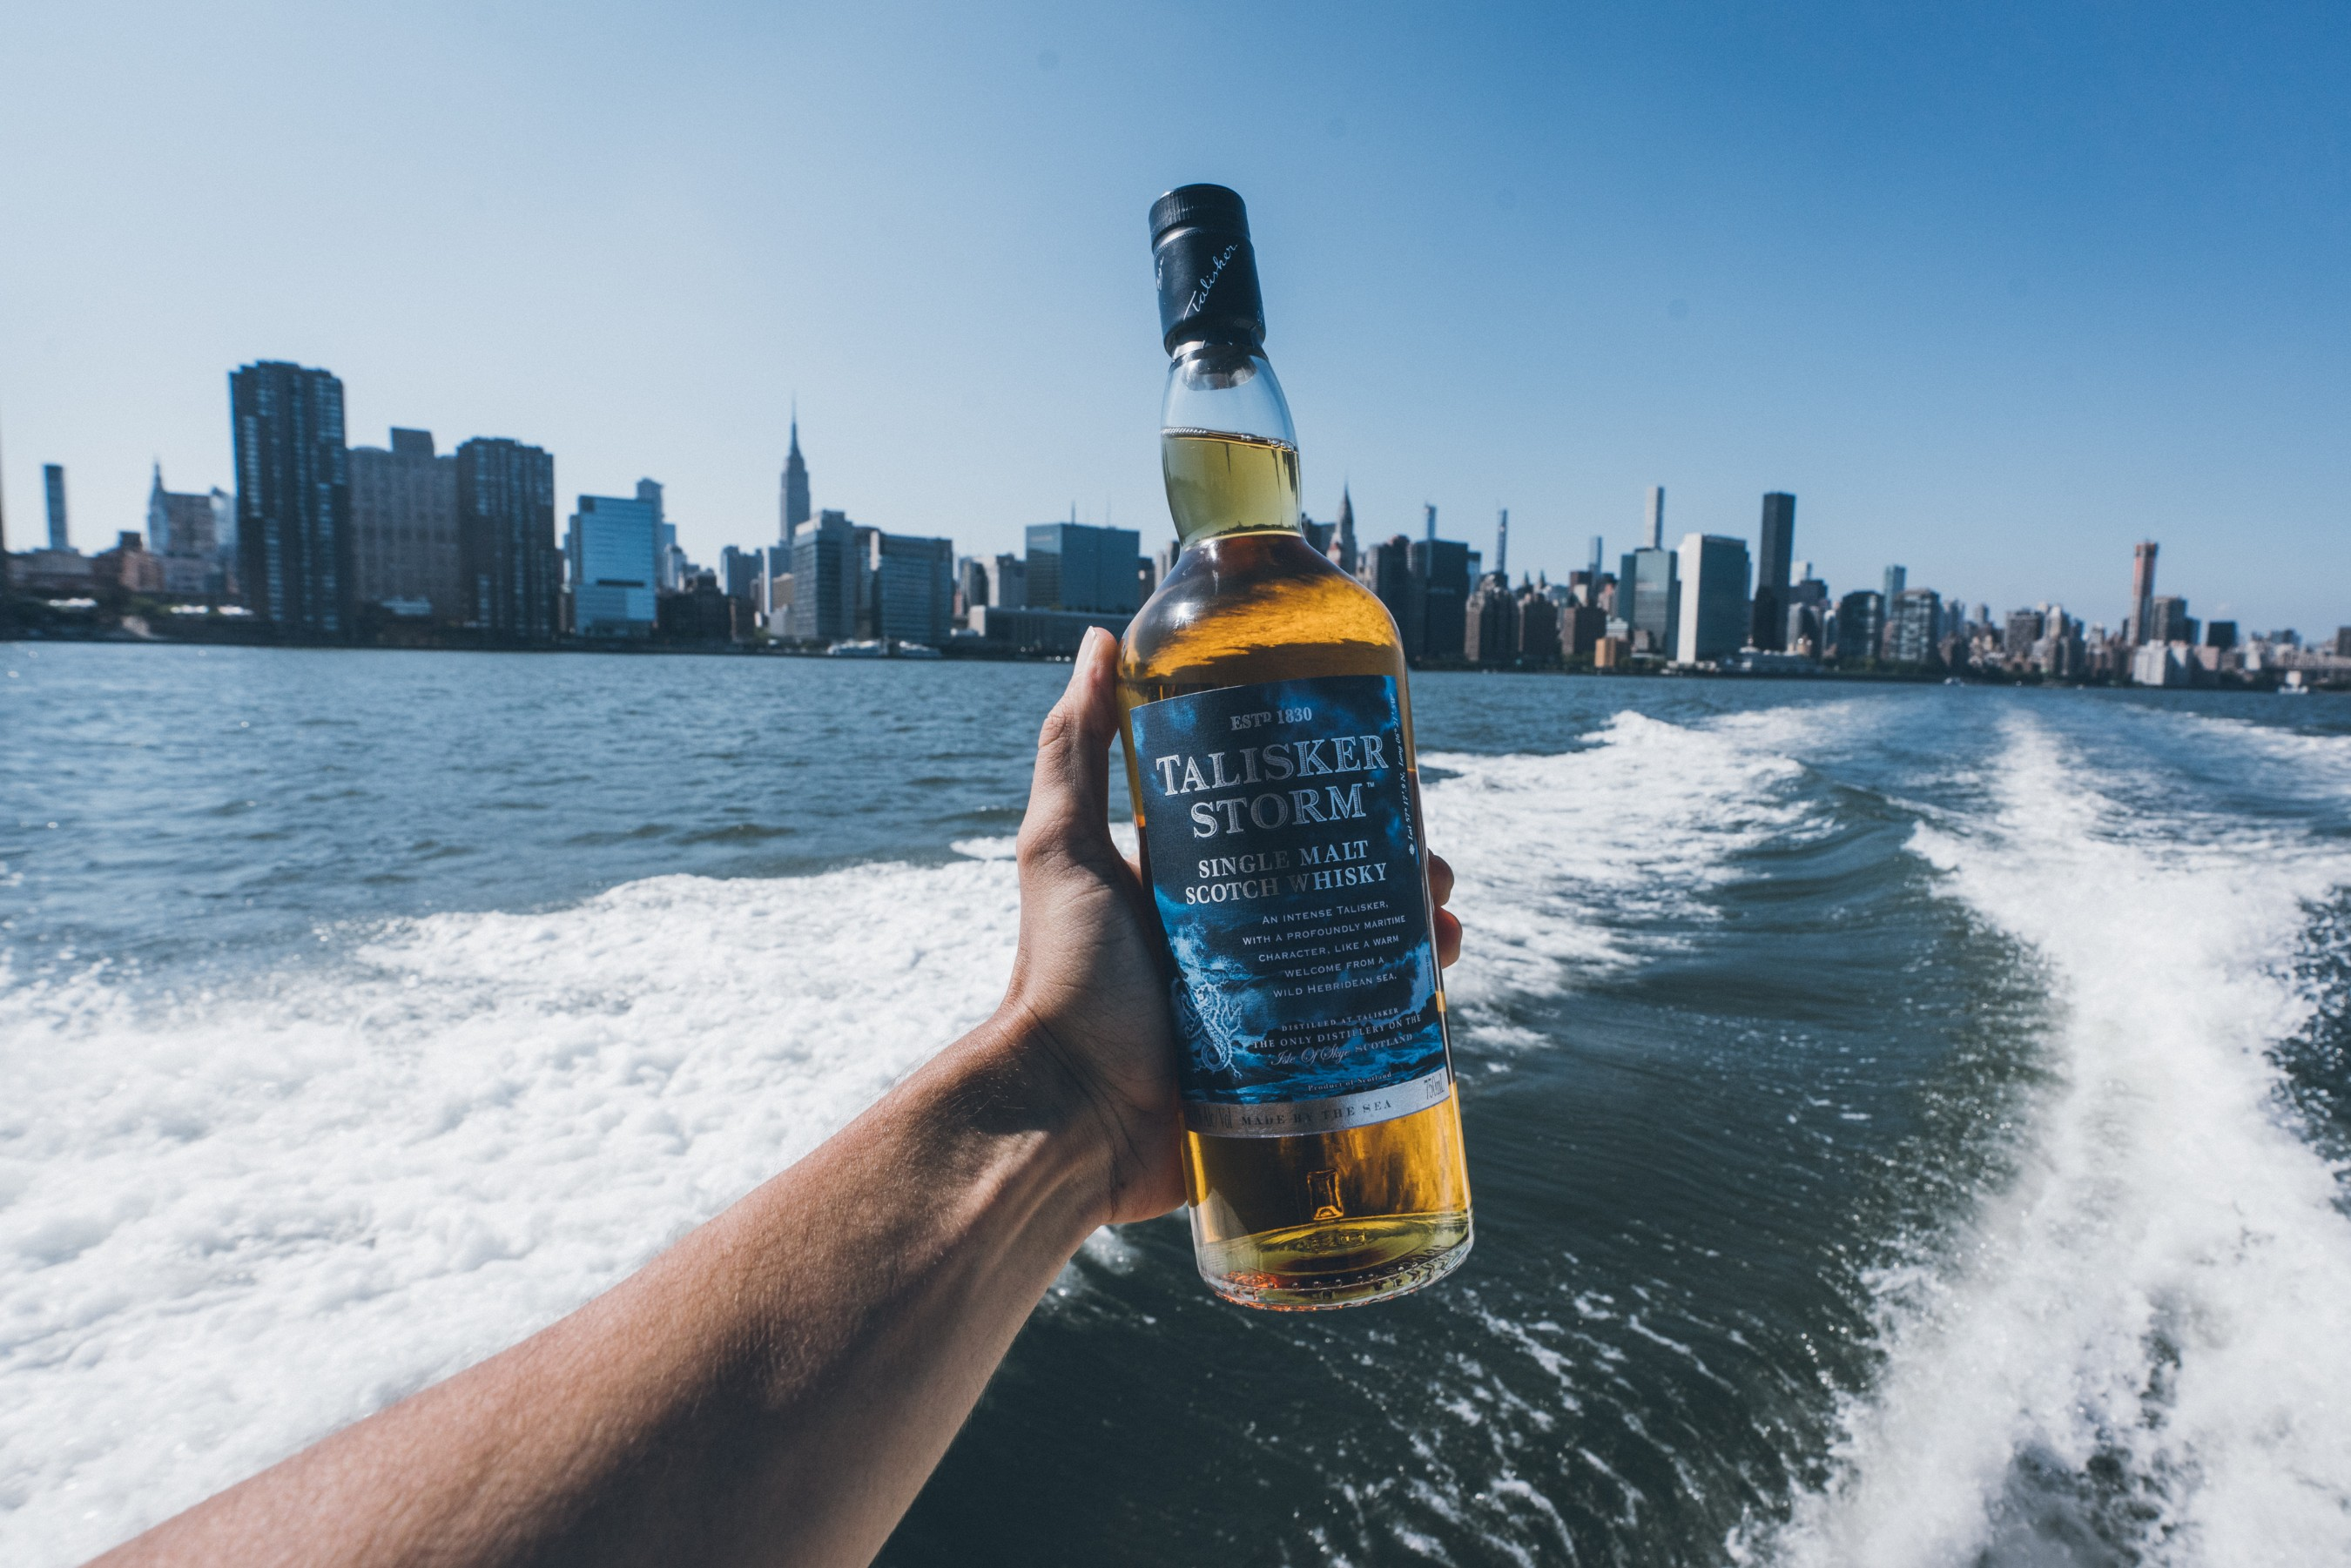 Talisker Single Malt Scotch Whisky announces their partnership with Billion Oyster Project – the New York City-based oyster reef restoration and public education nonprofit organization. #ShuckFromHome. Photo Credit: Jose Silva